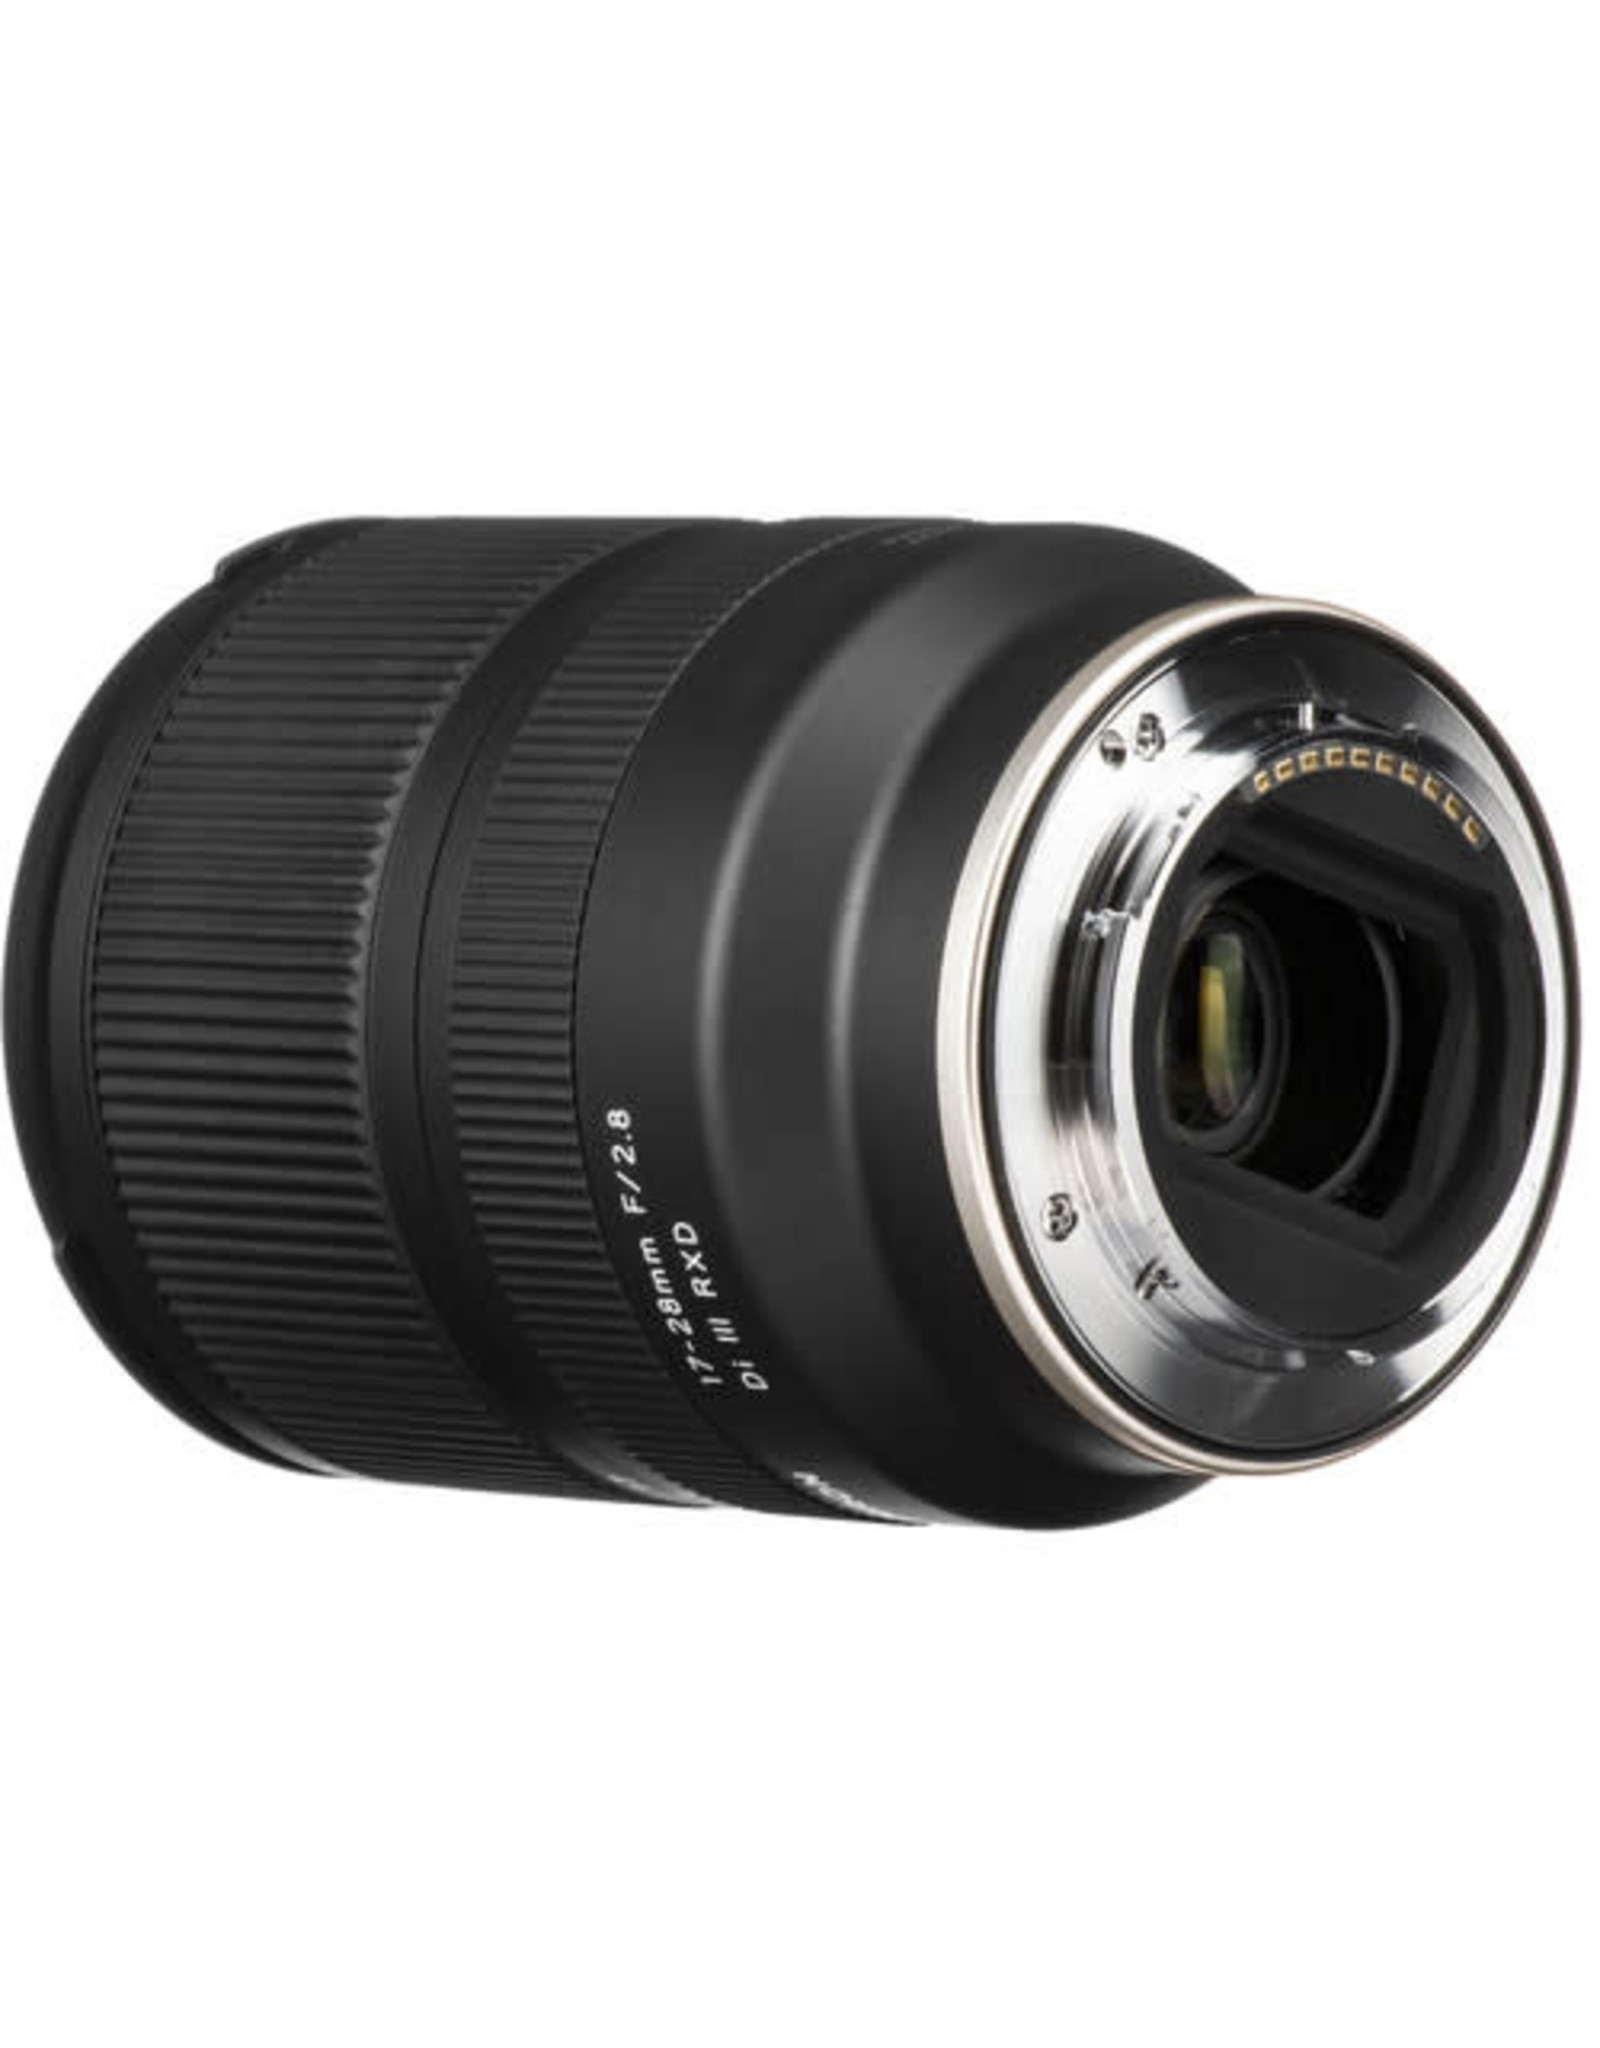 Tamron Tamron 17-28mm f/2.8 Di III RXD Lens for Sony E